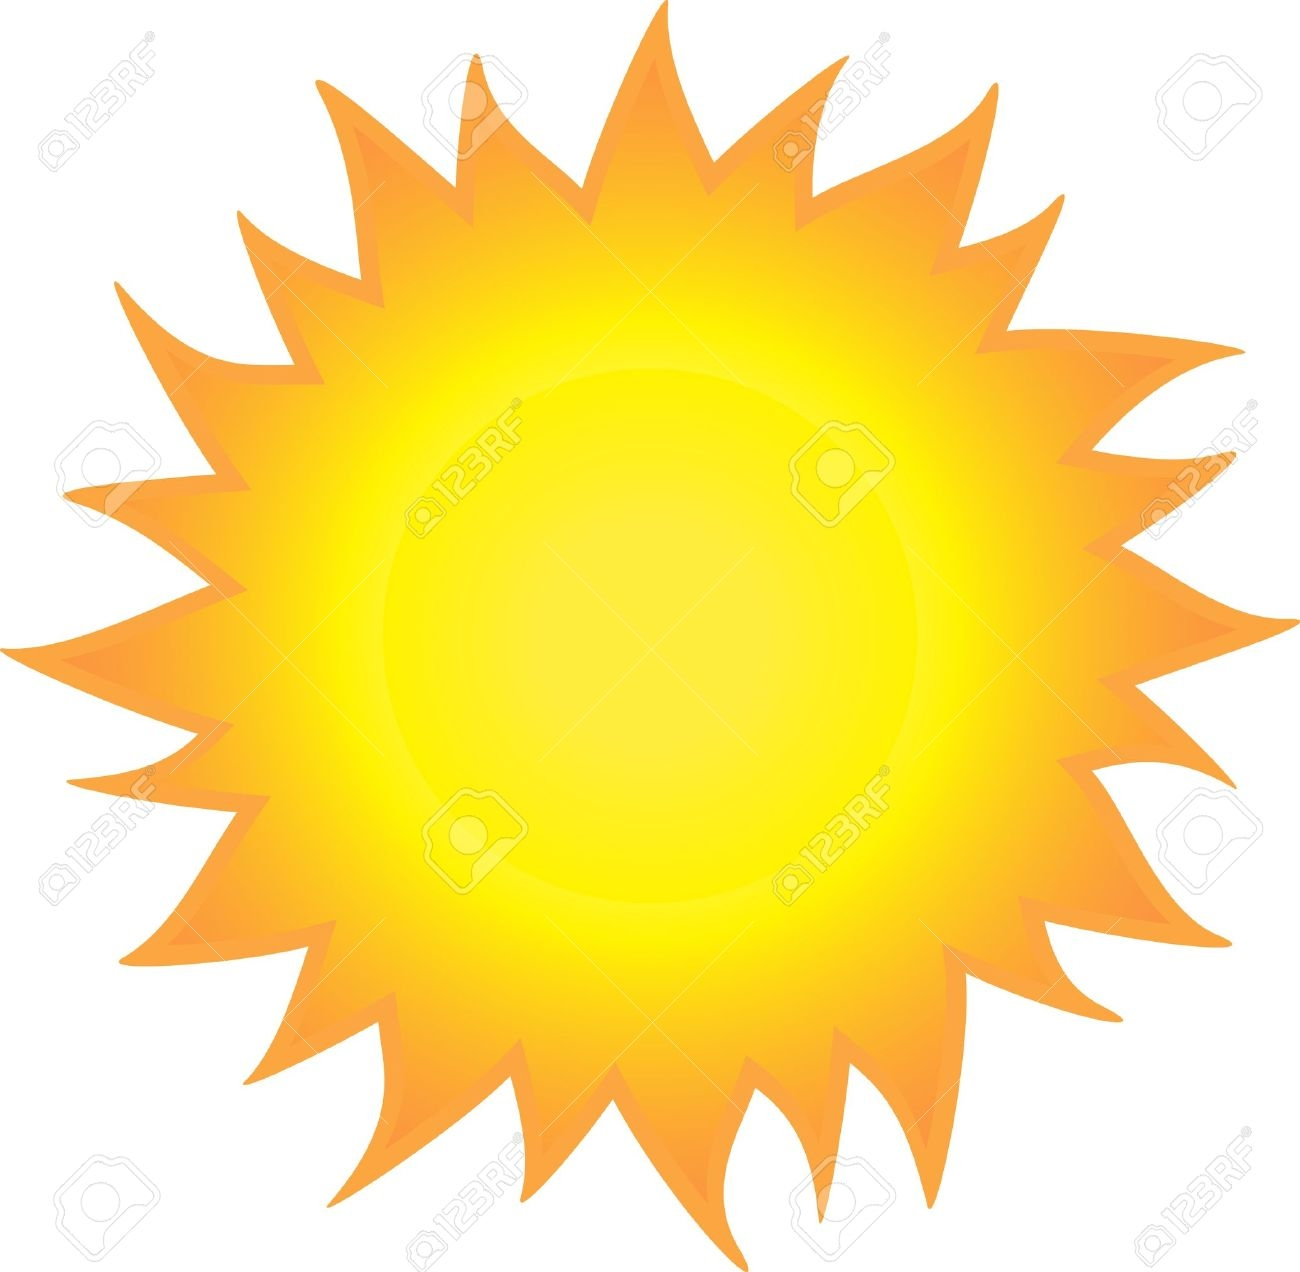 Flaming sun clipart png black and white download Burning sun clipart - ClipartFest png black and white download